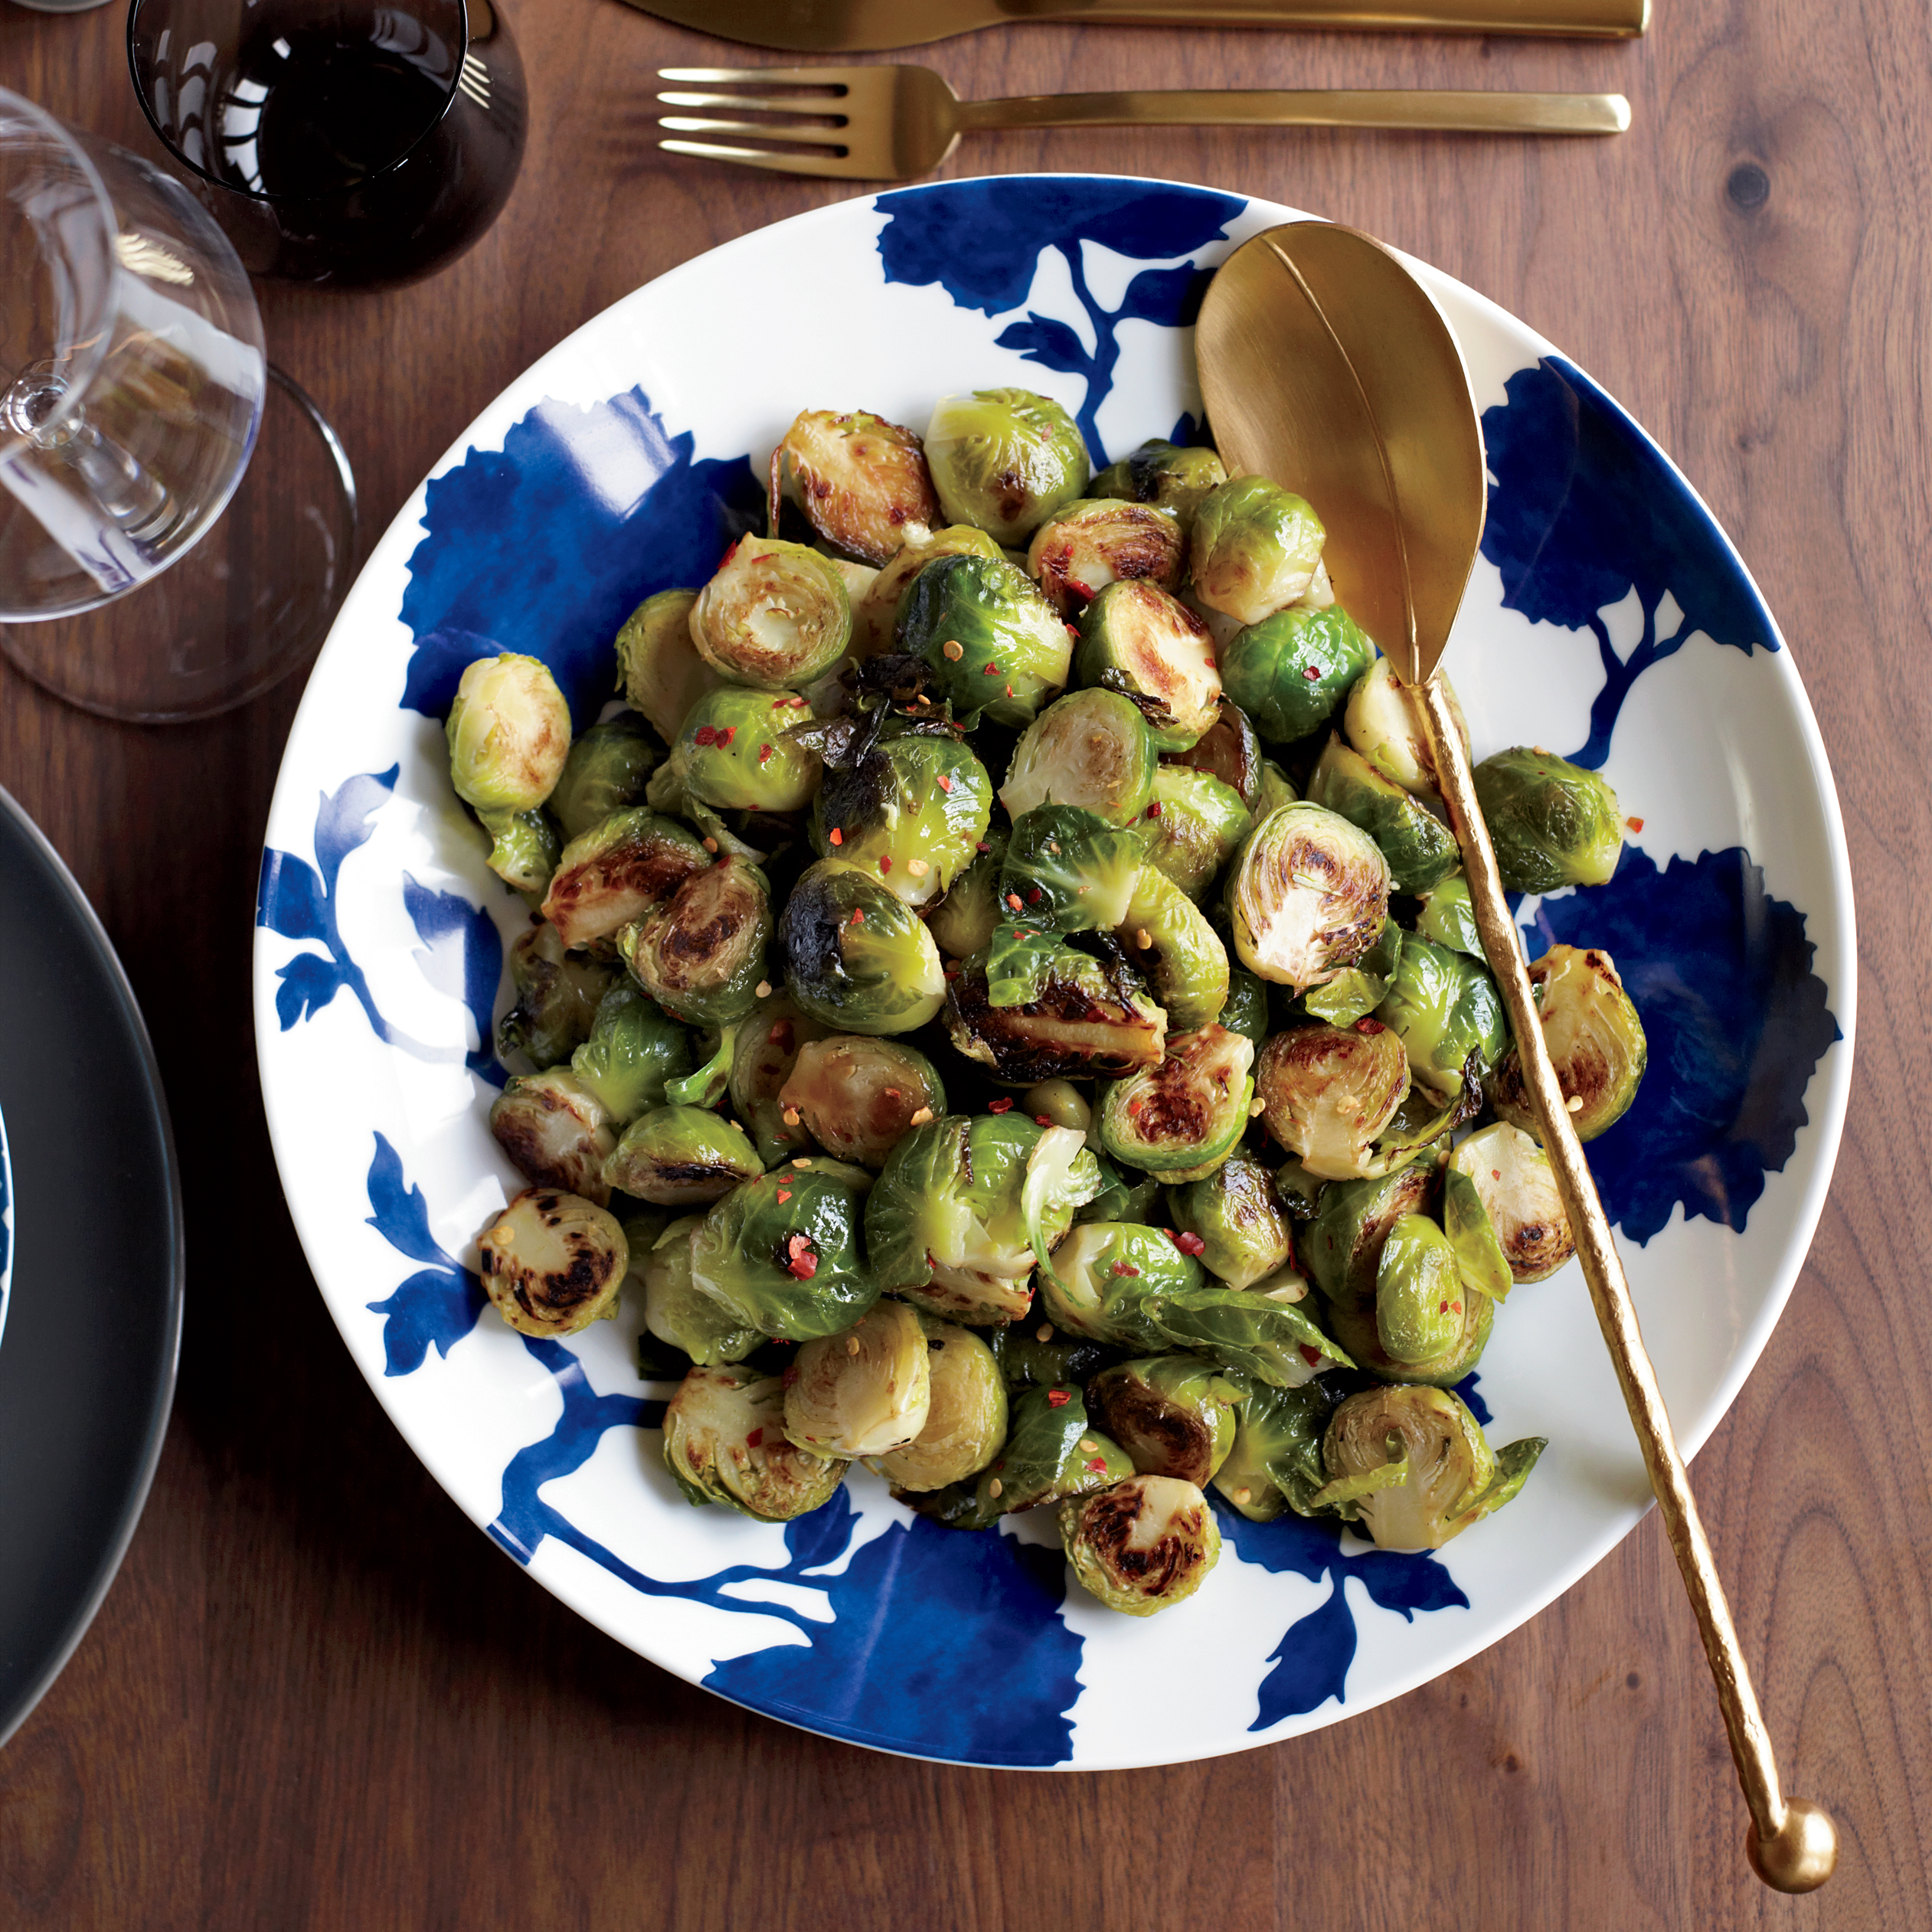 Spicy-and-Garlicky Brussels Sprouts Recipe - Joanne Chang ...